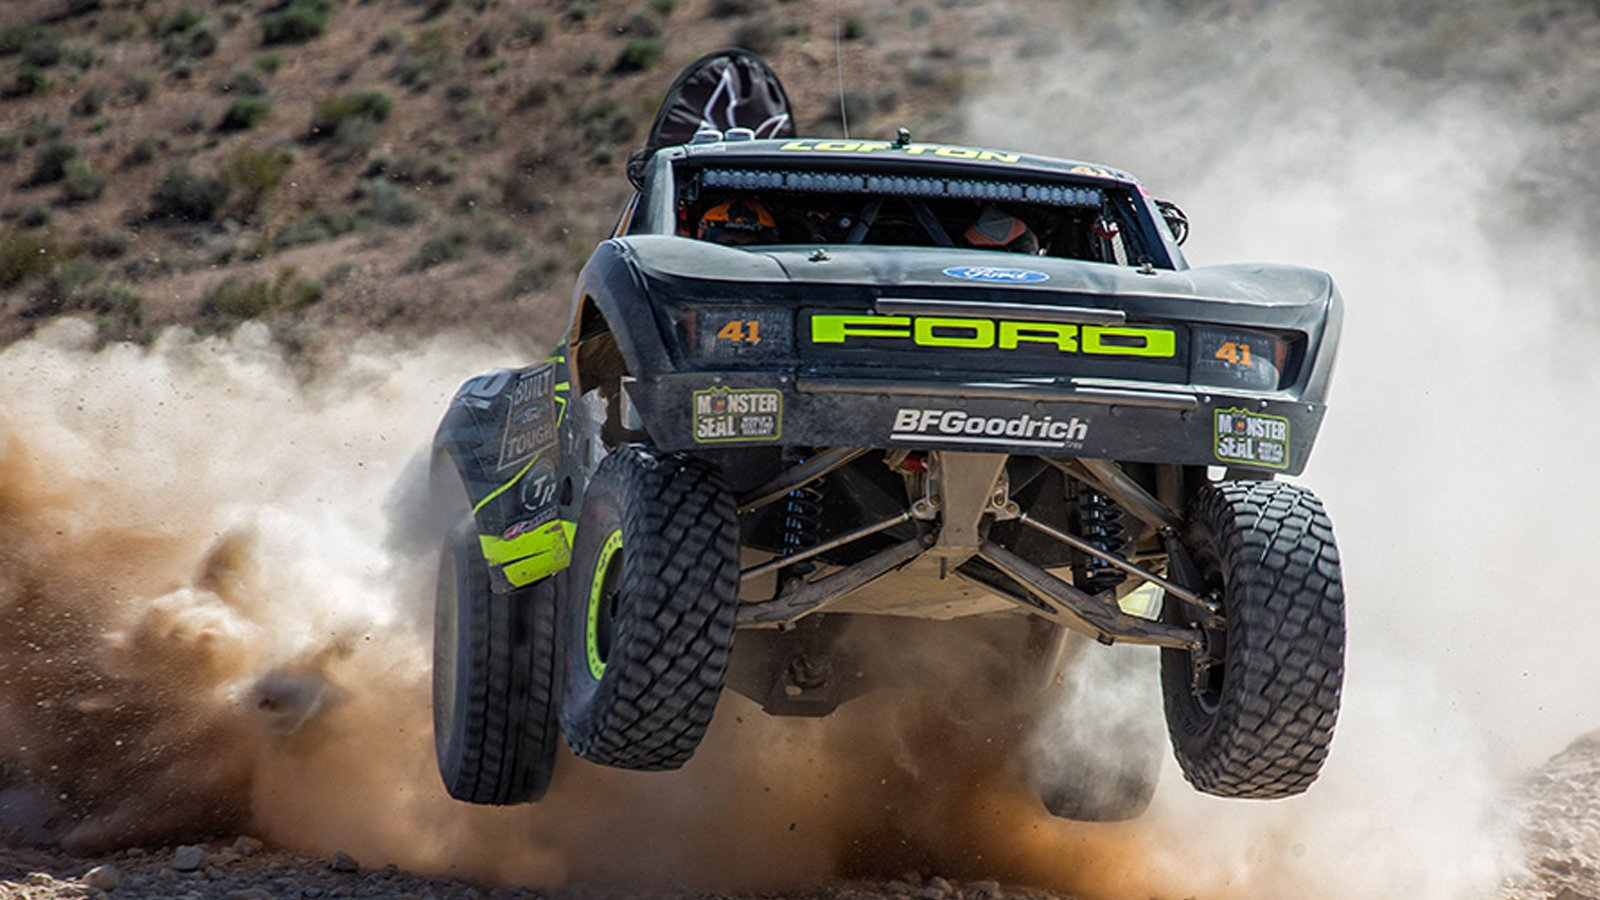 Building A Top Level Trophy Truck Ford Trophy Truck 1600x900 Wallpaper Teahub Io